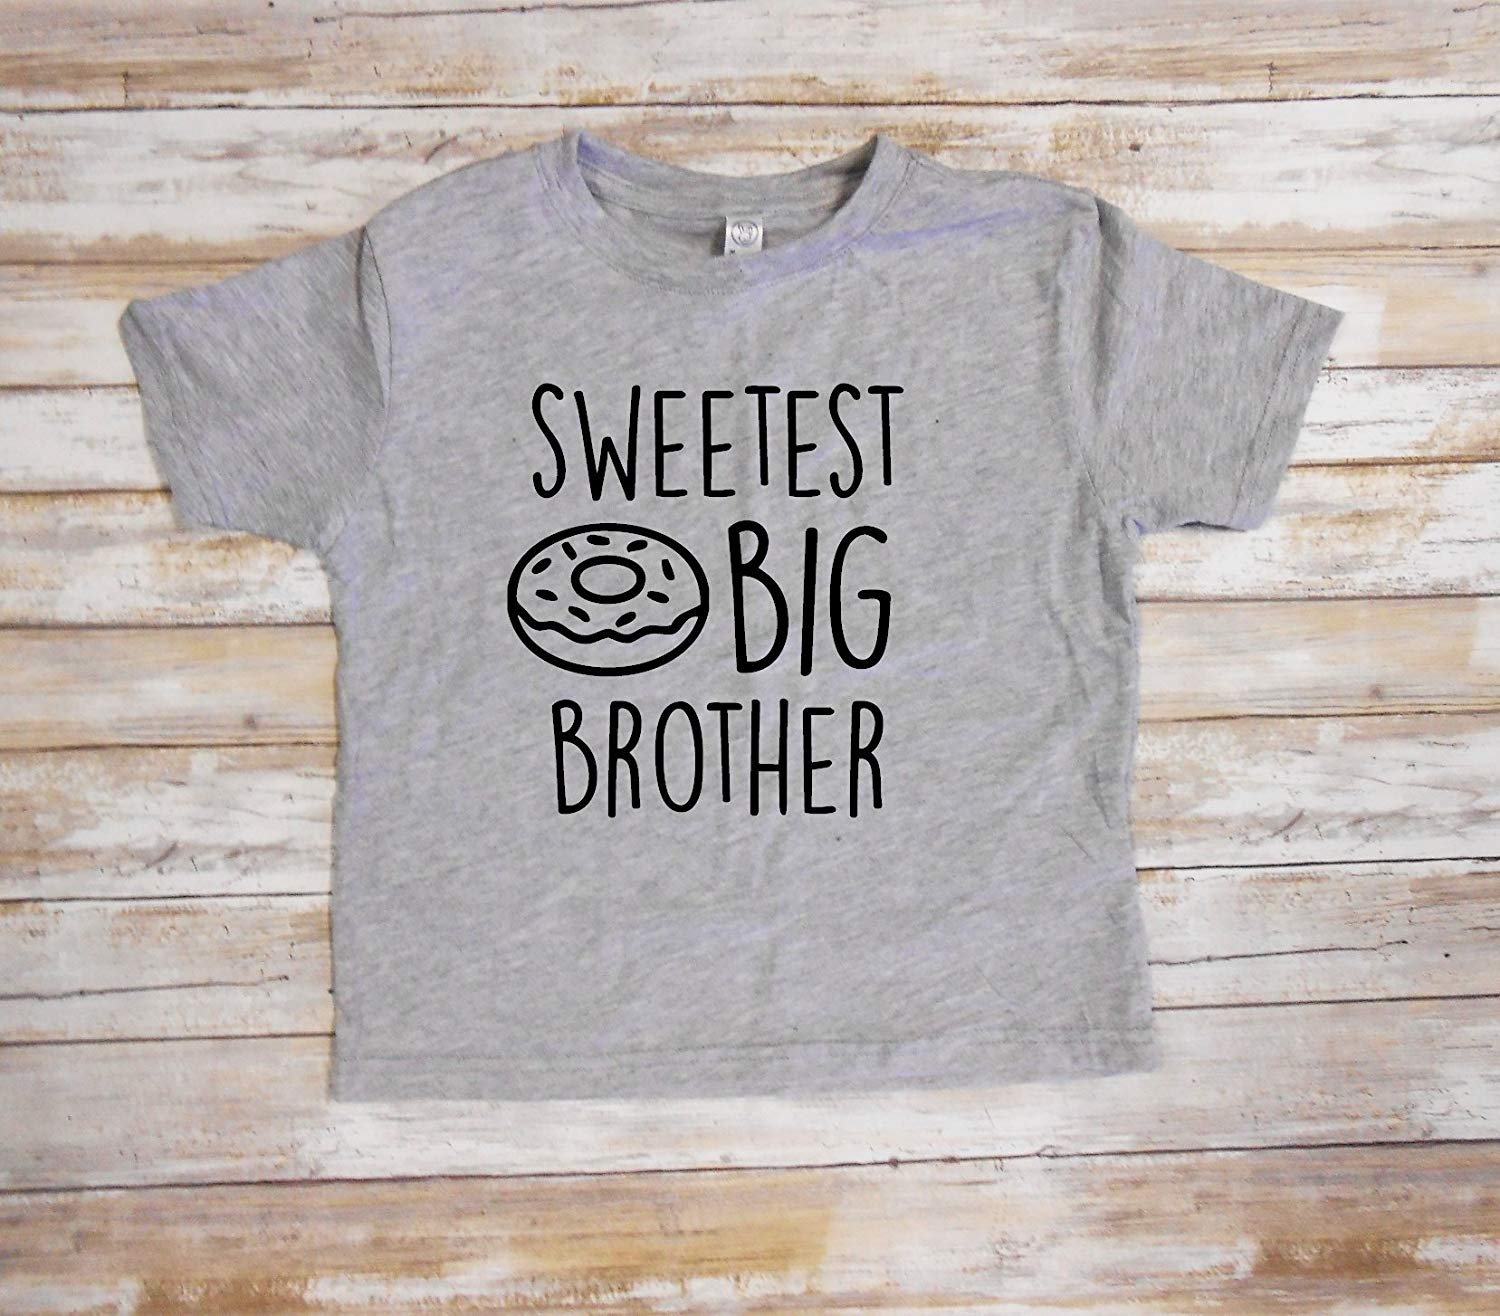 41e29c191eea Sweetest Big Brother T-Shirt - Toddler Tee - Youth Tee - Big Brother Shirt